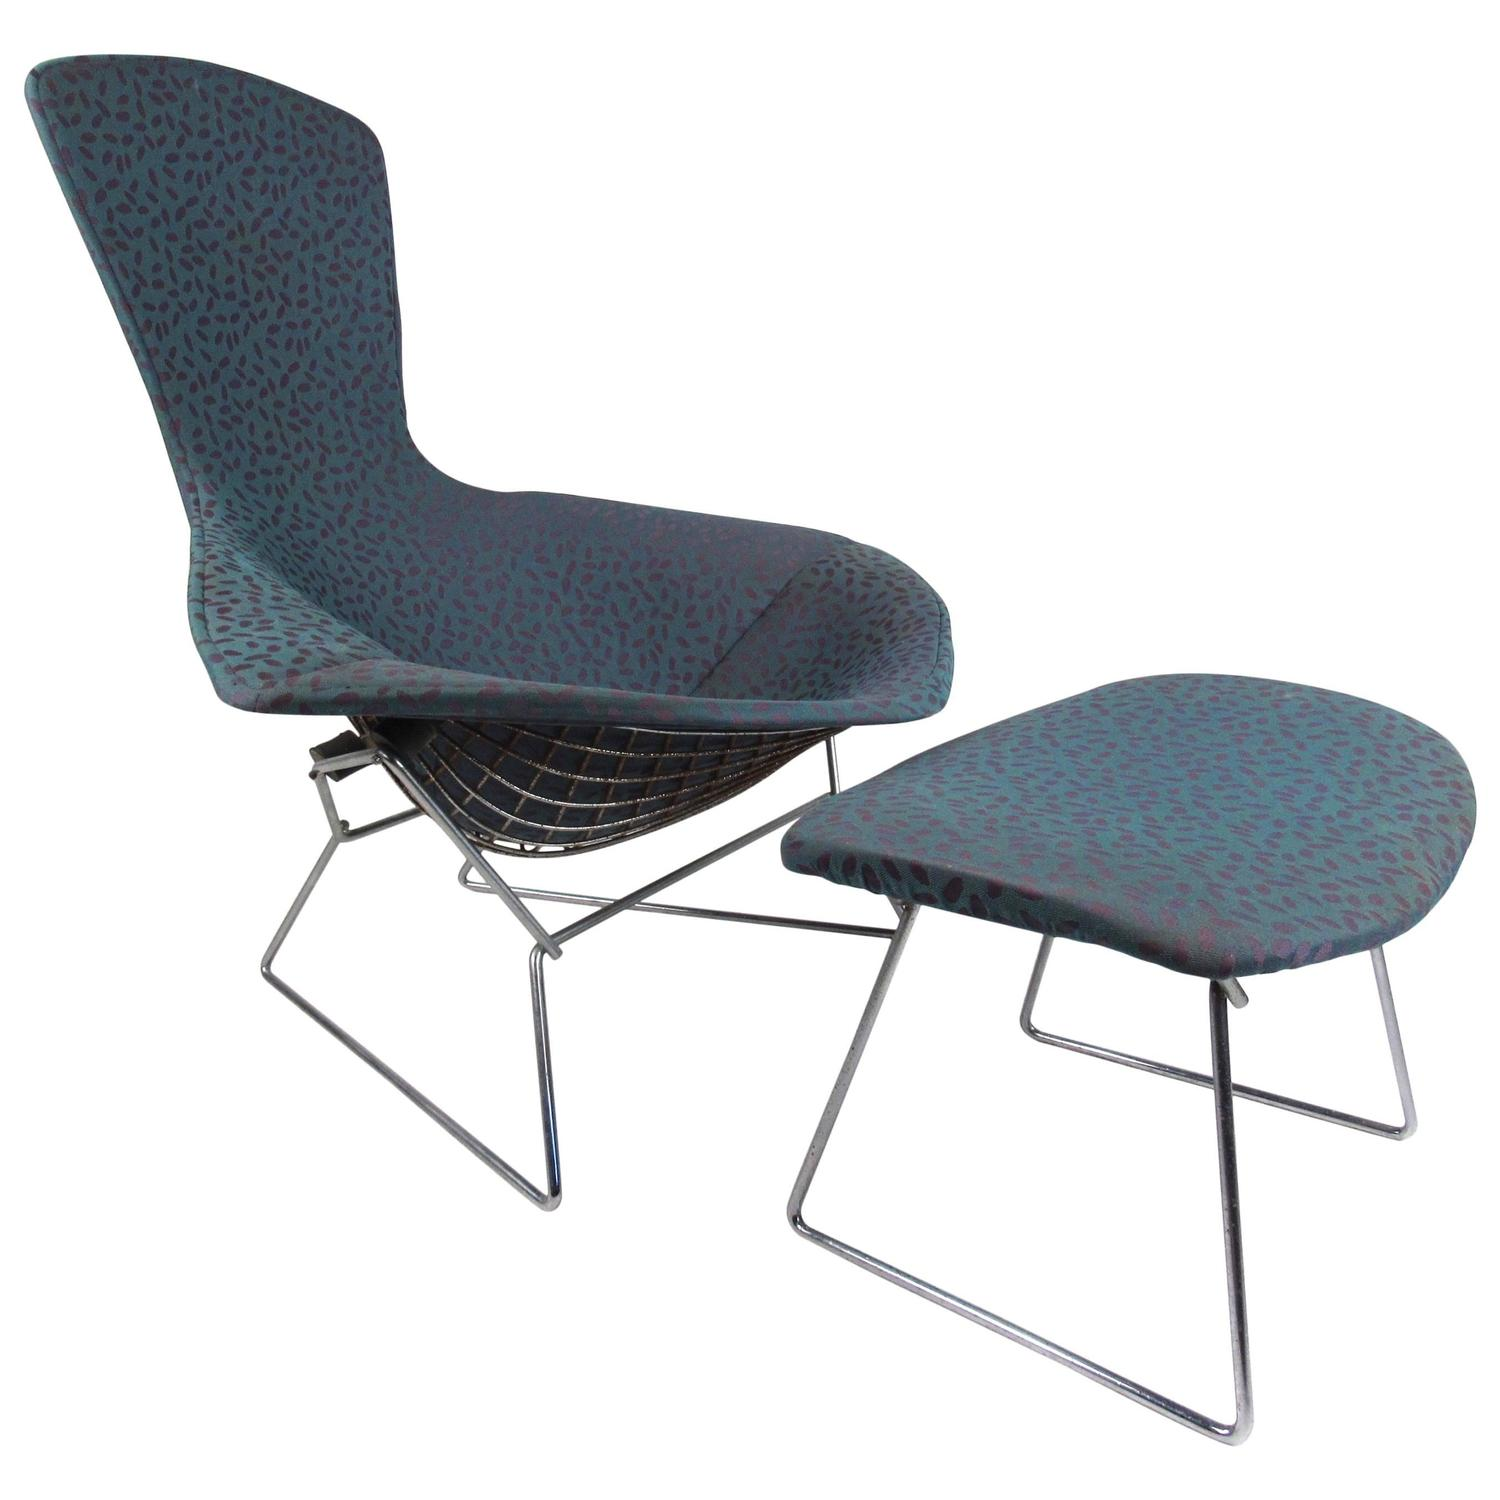 Harry Bertoia Chair Harry Bertoia Quotbird Quot Chair With Ottoman By Knoll Furniture